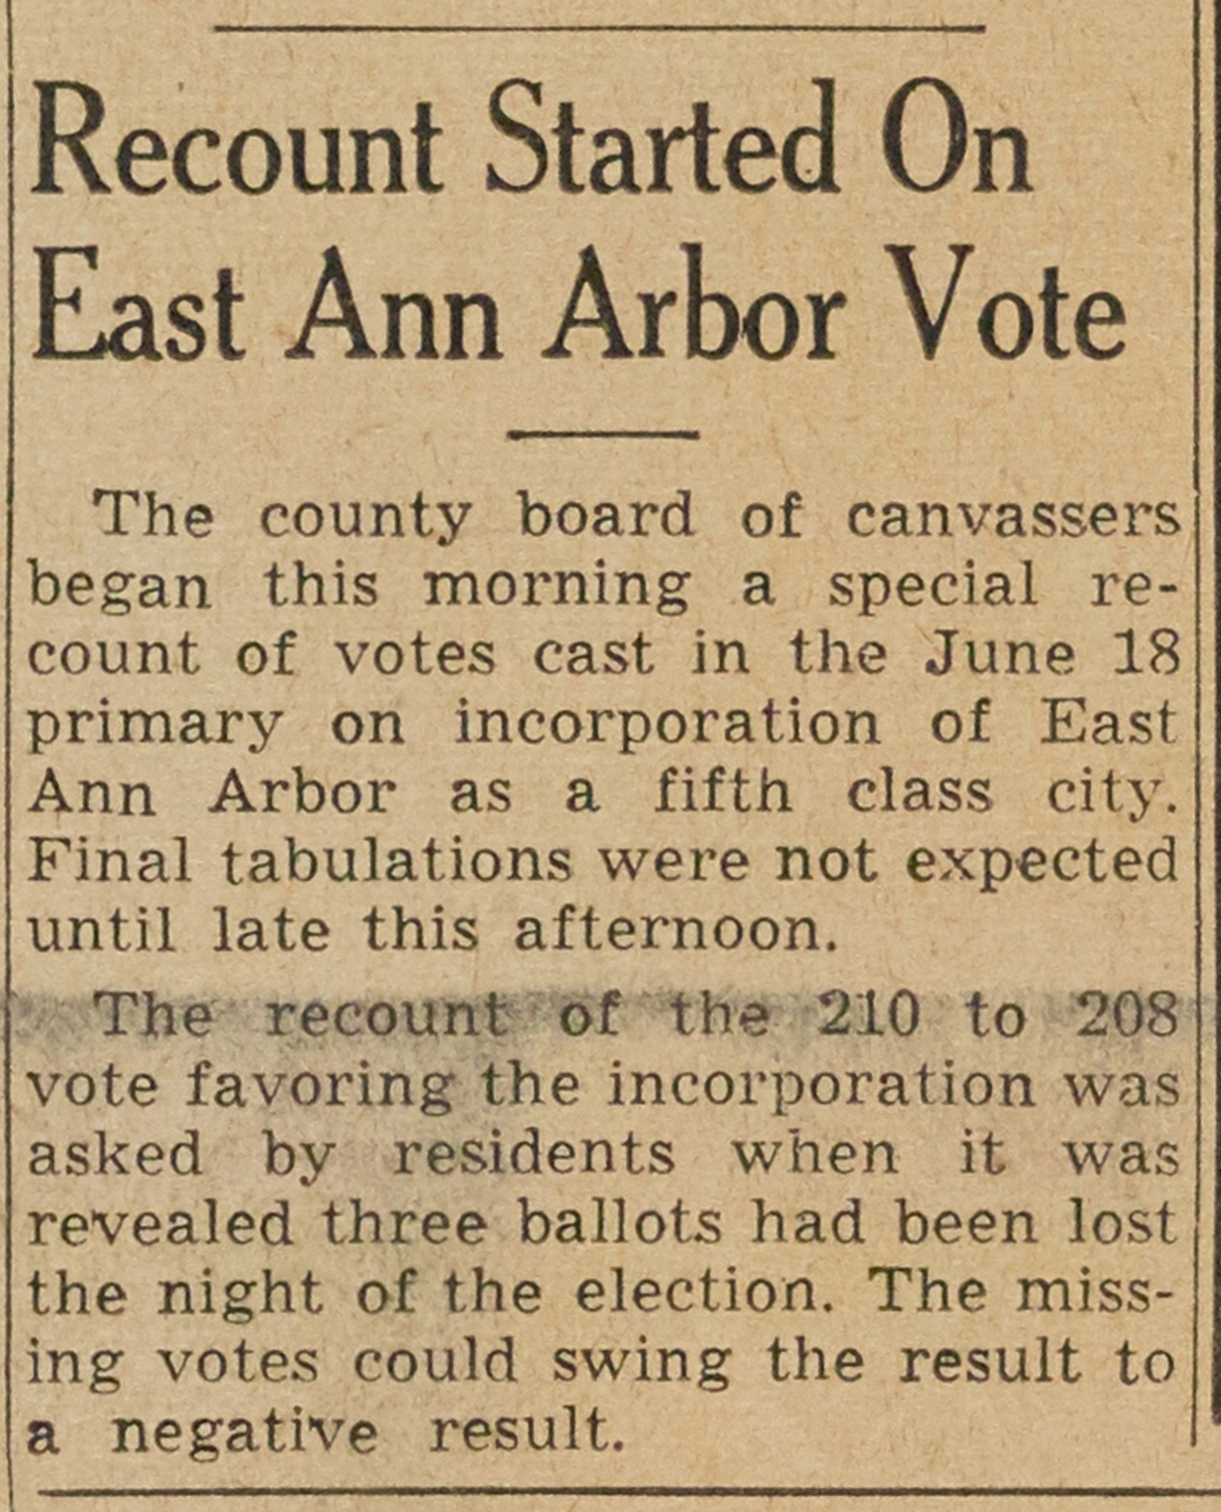 Recount Started On East Ann Arbor Vote image